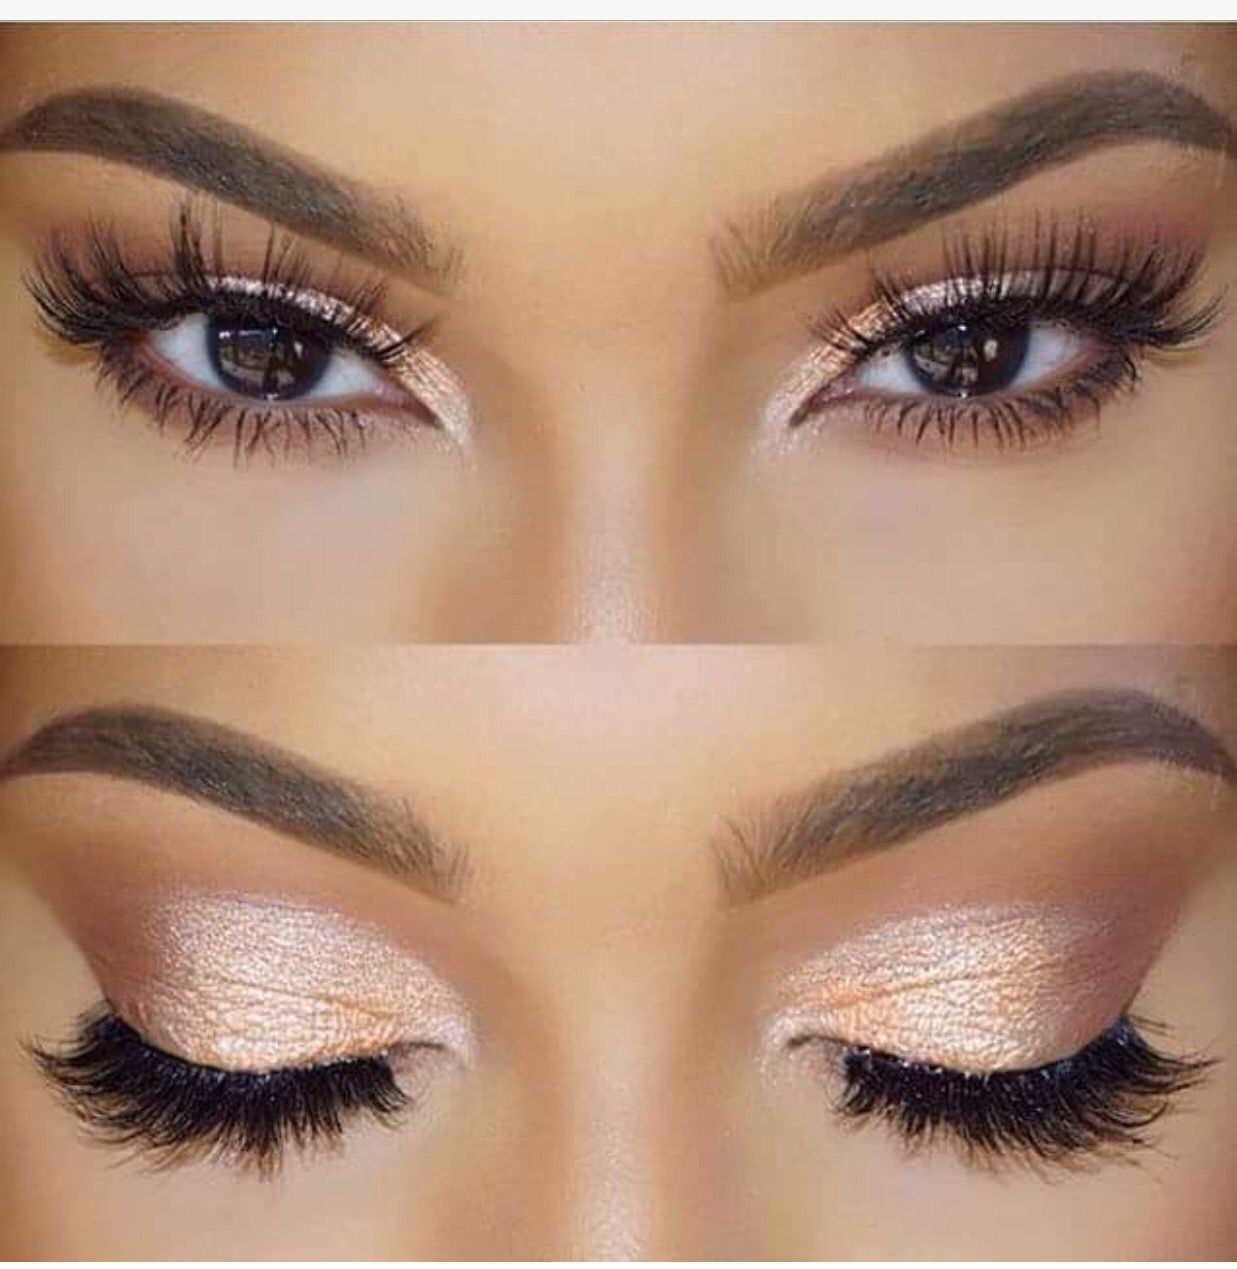 Glowly Nutural Lid Make Up In 2018 Pinterest Makeup Eye